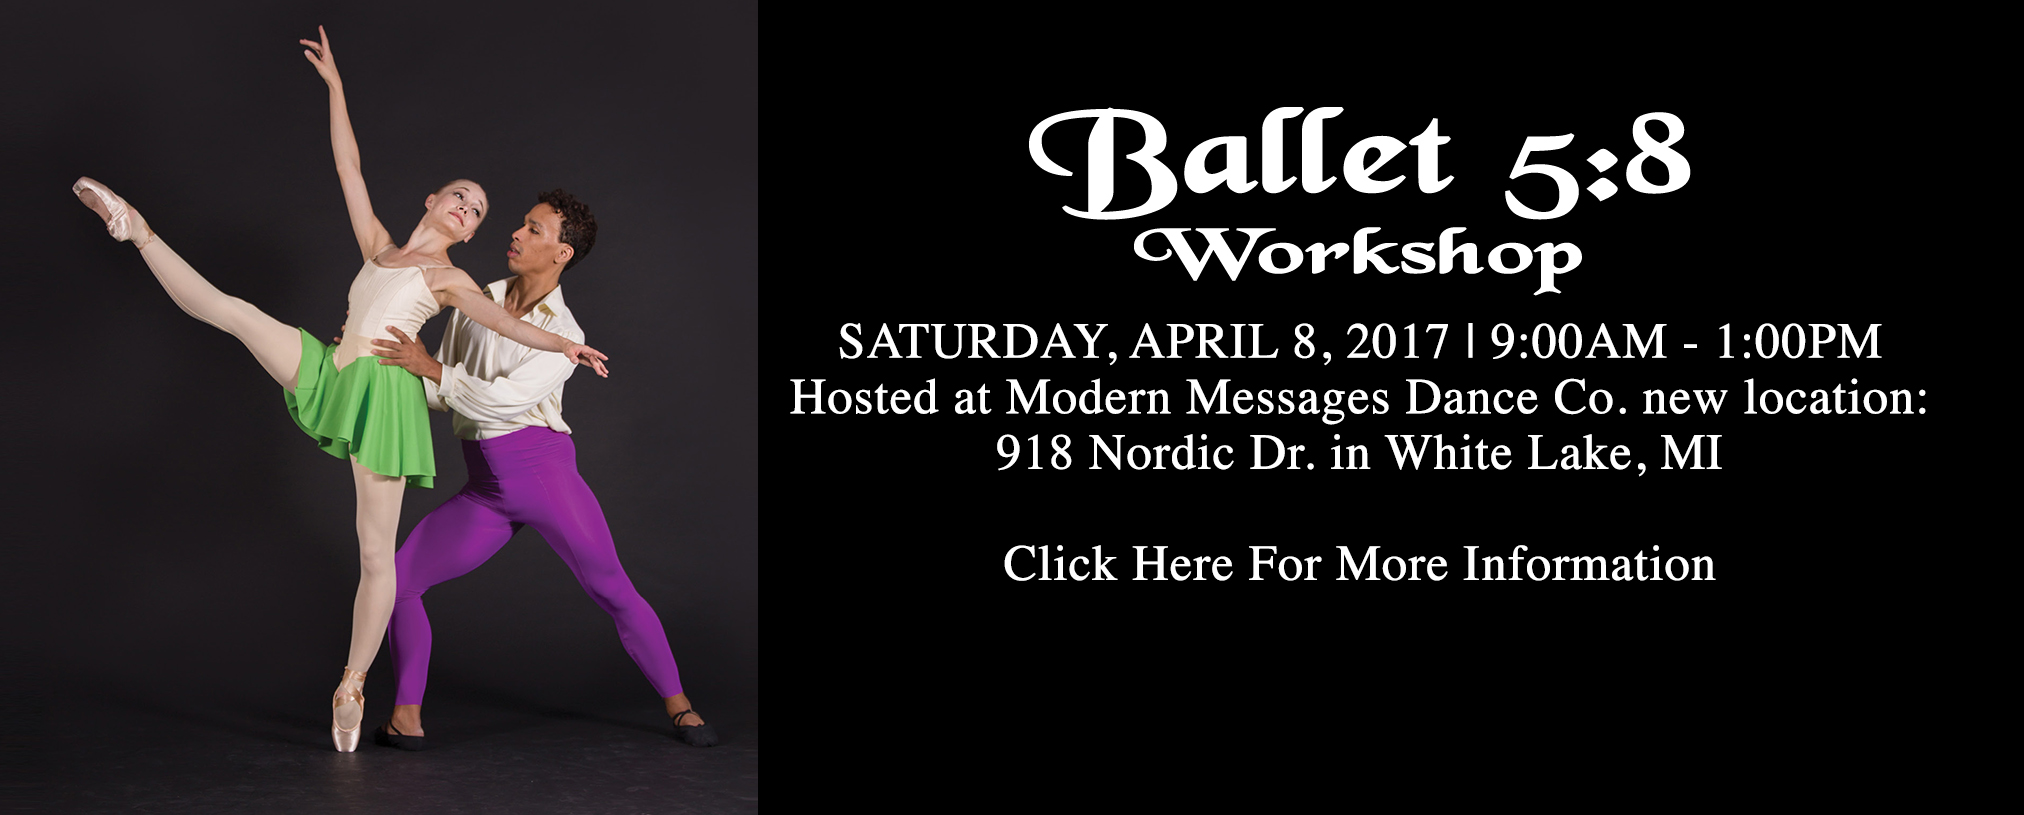 Ballet 5:8 Workshop